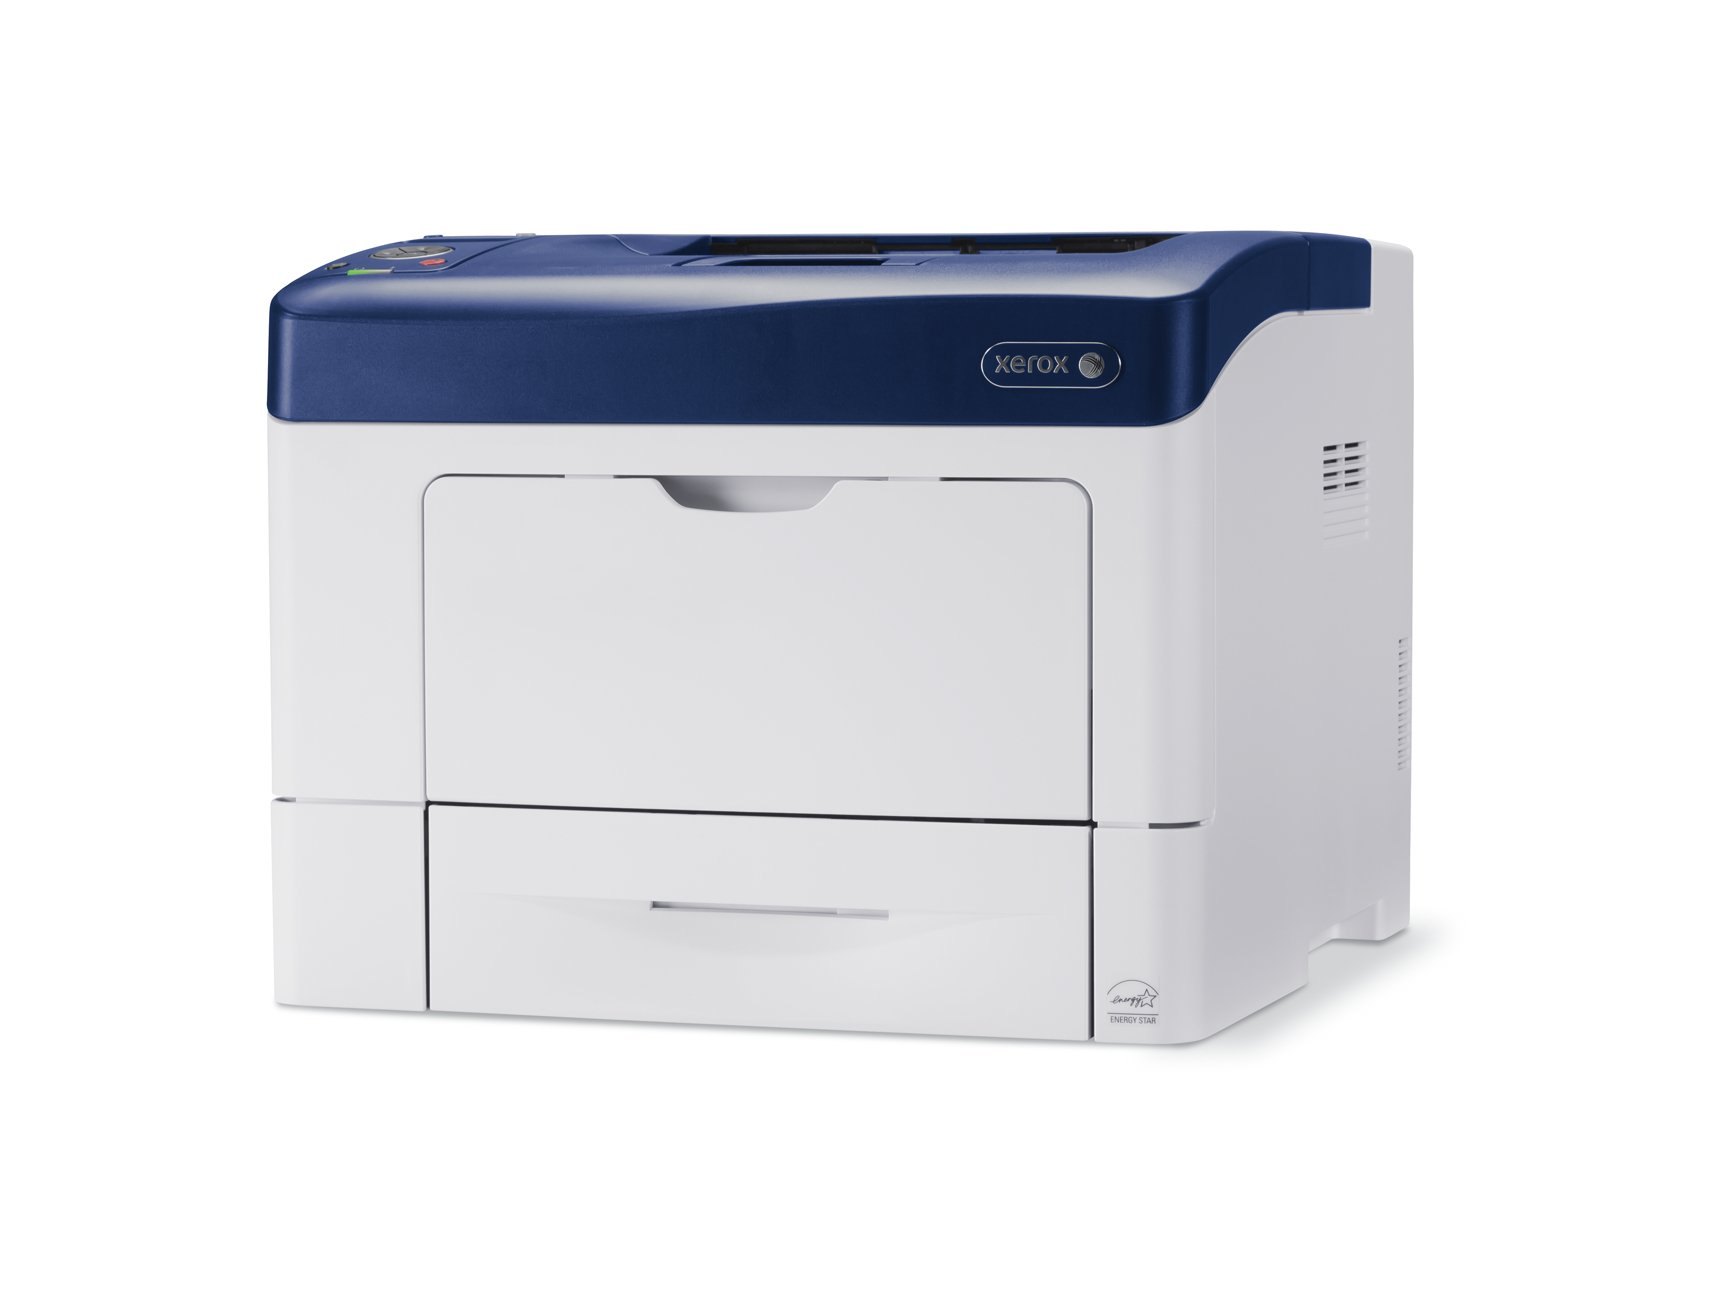 Xerox Phaser 3610/DN Monochrome Printer, Amazon Dash Replenishment Enabled by Xerox (Image #4)